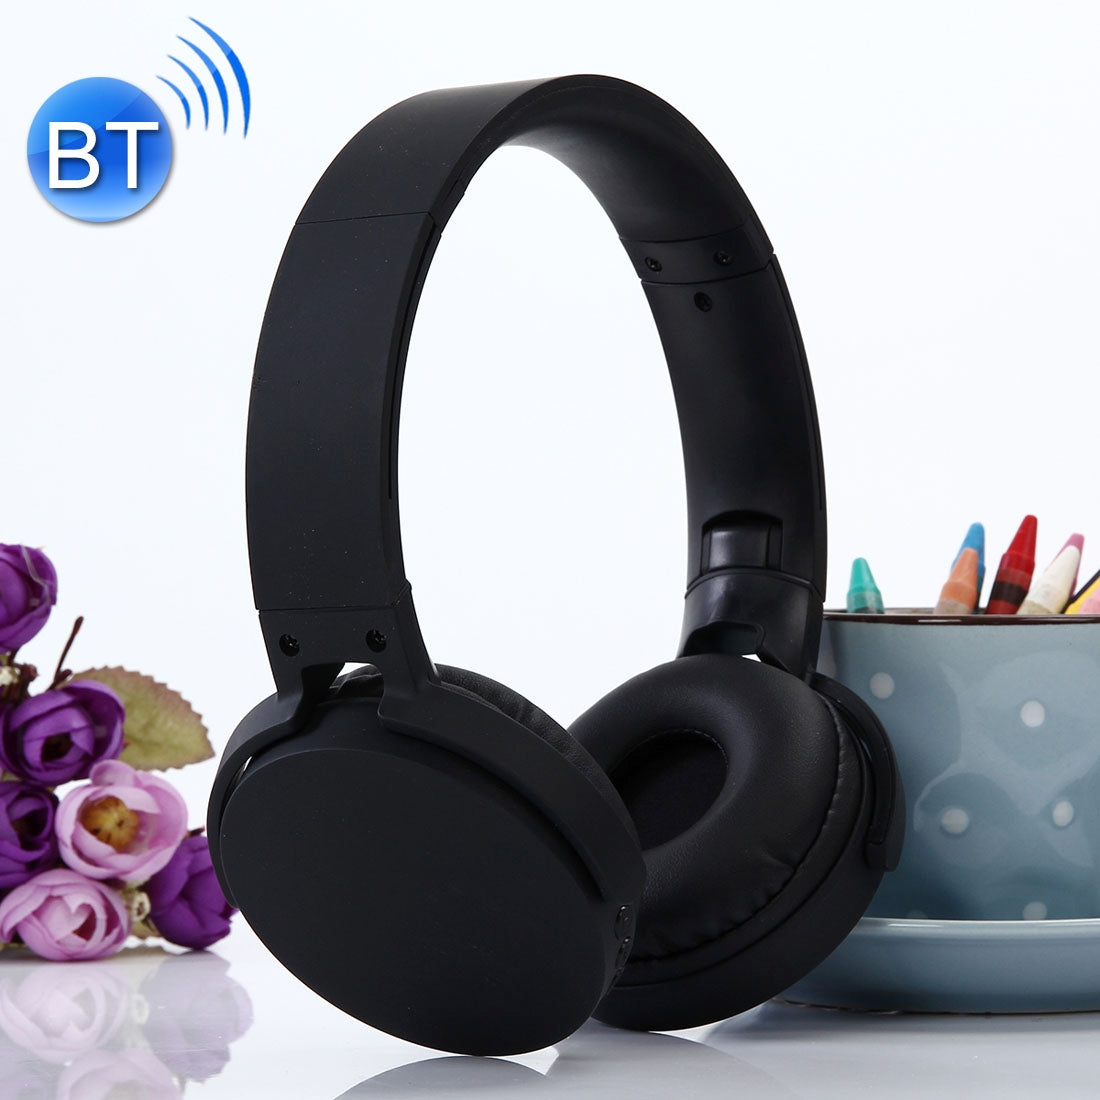 MDR-XB650BT Headband Folding Stereo Wireless Bluetooth Headphone Headset, Support 3.5mm Audio Input & Hands-free Call, For iPhone, iPad, iPod, Samsung, HTC, Xiaomi and other Audio Devices(Black)